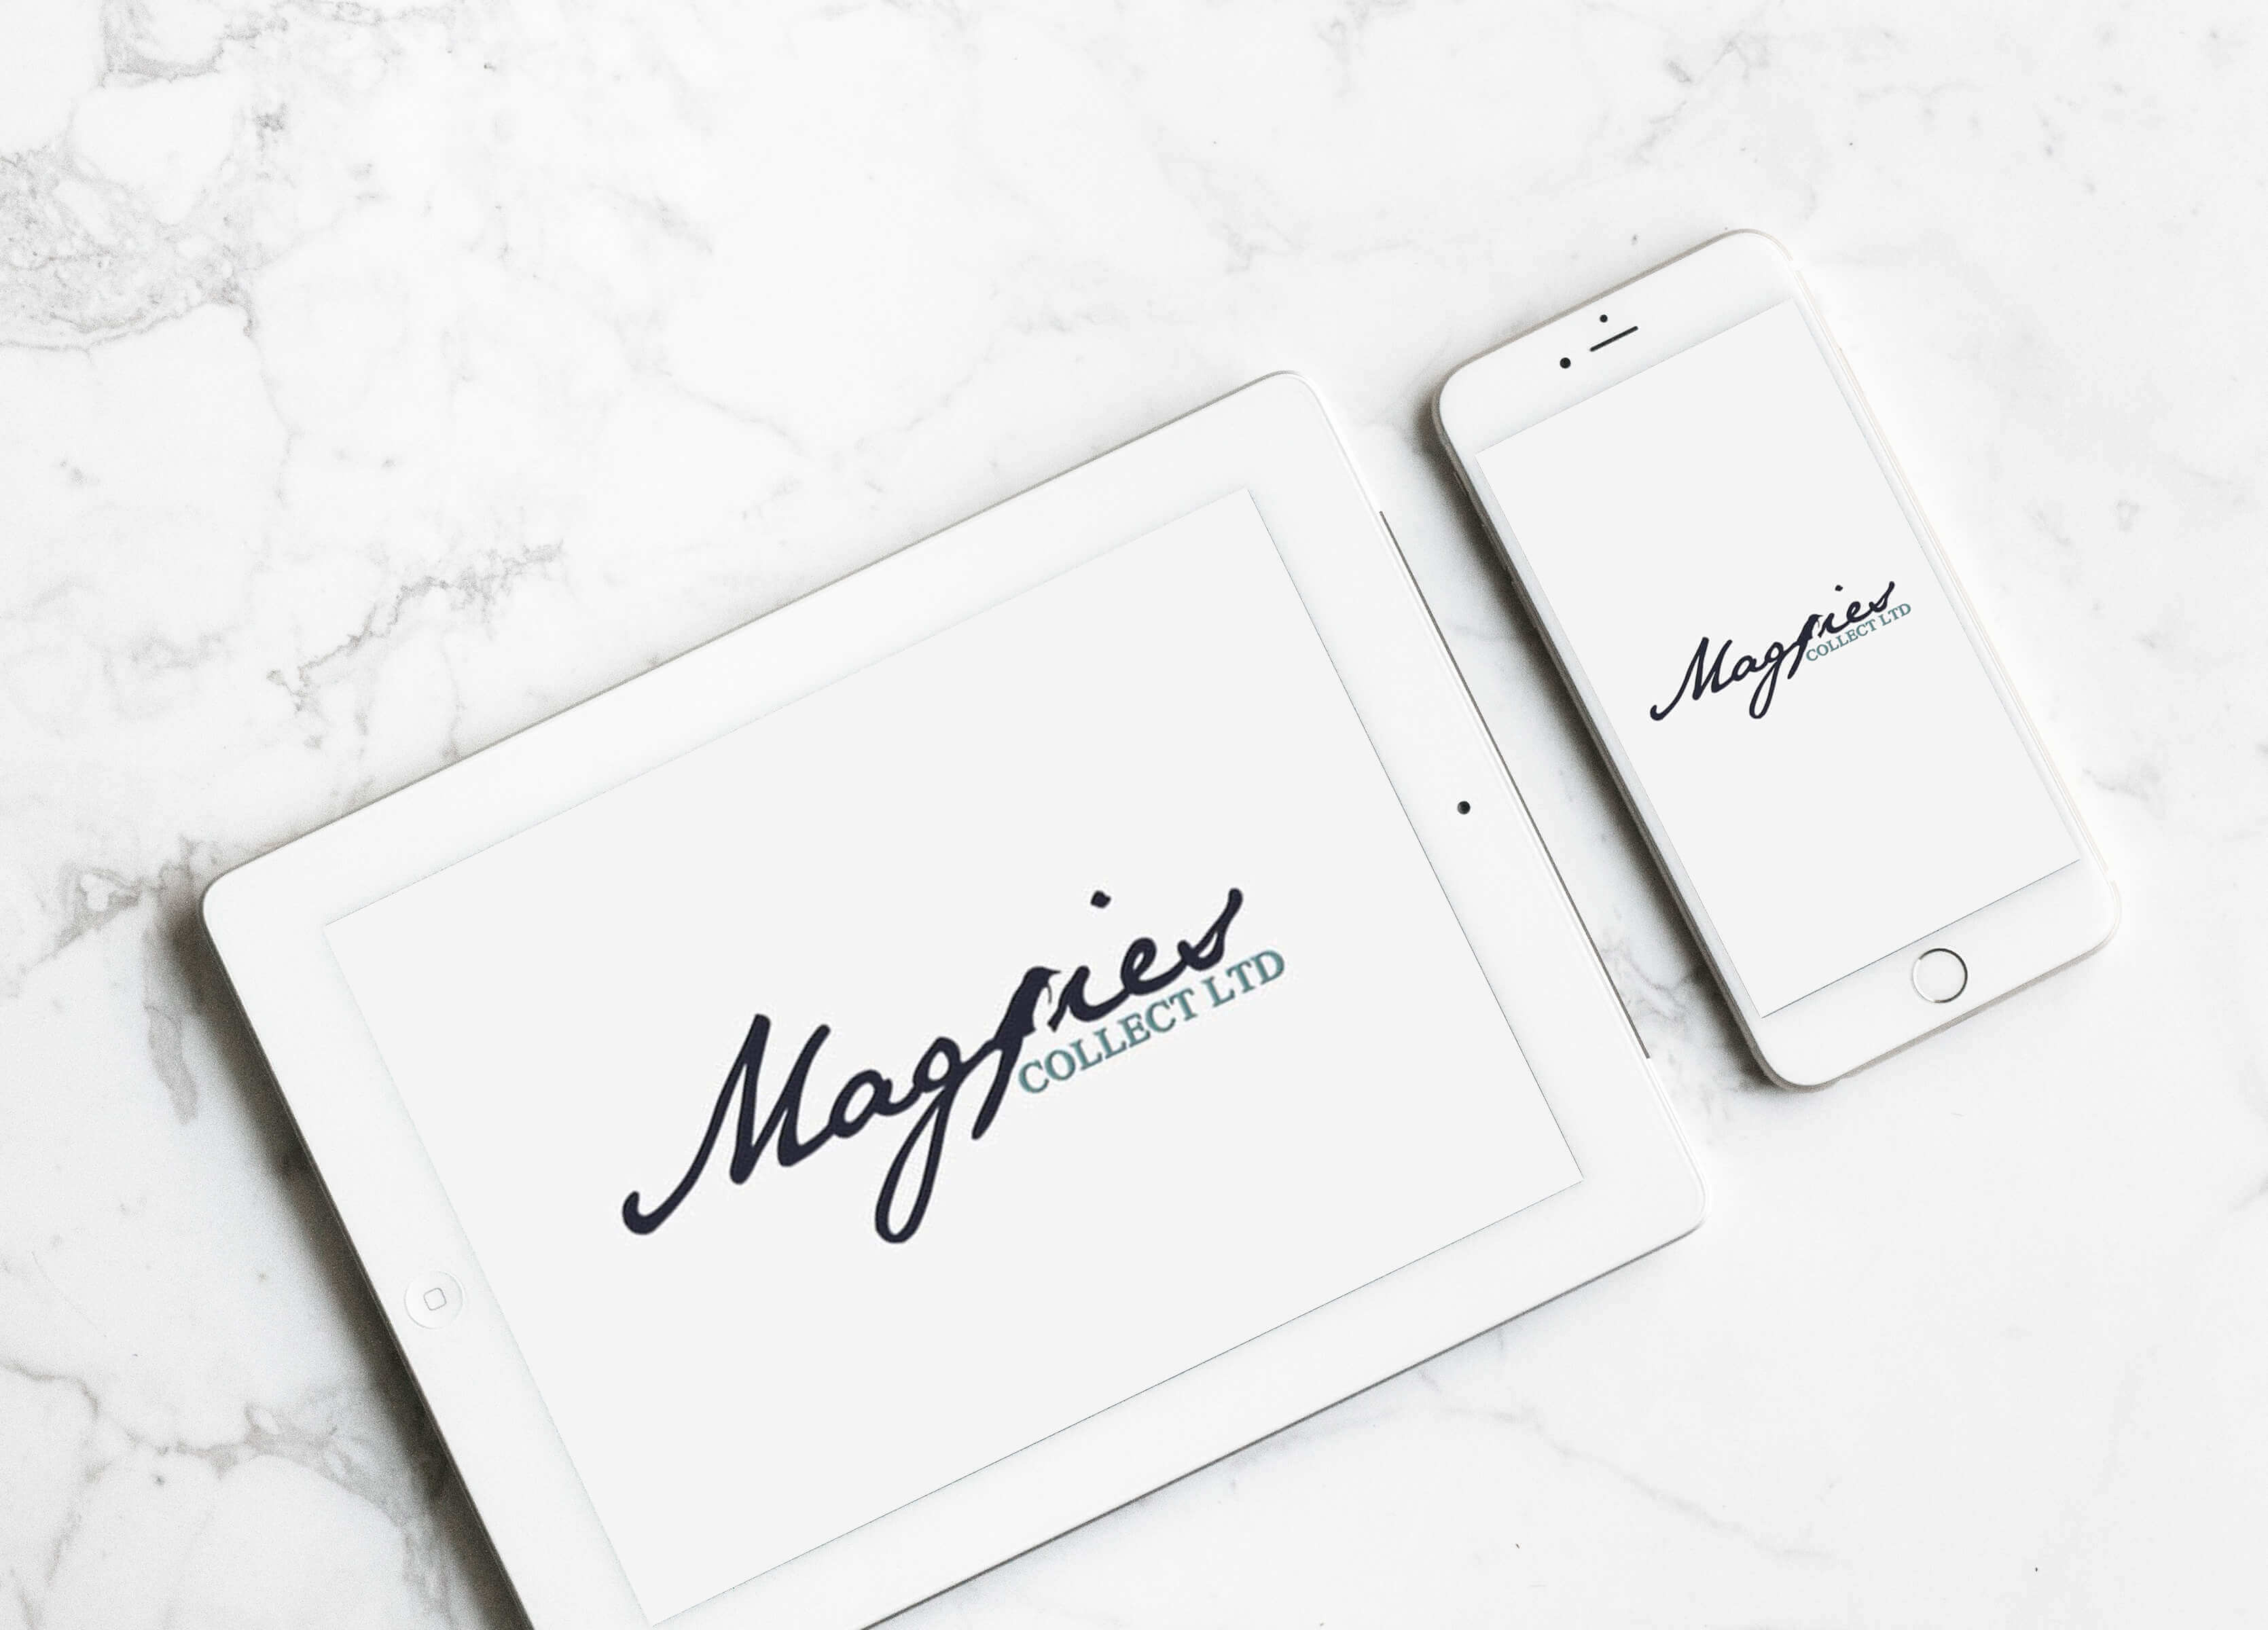 magpies-collect-ltd